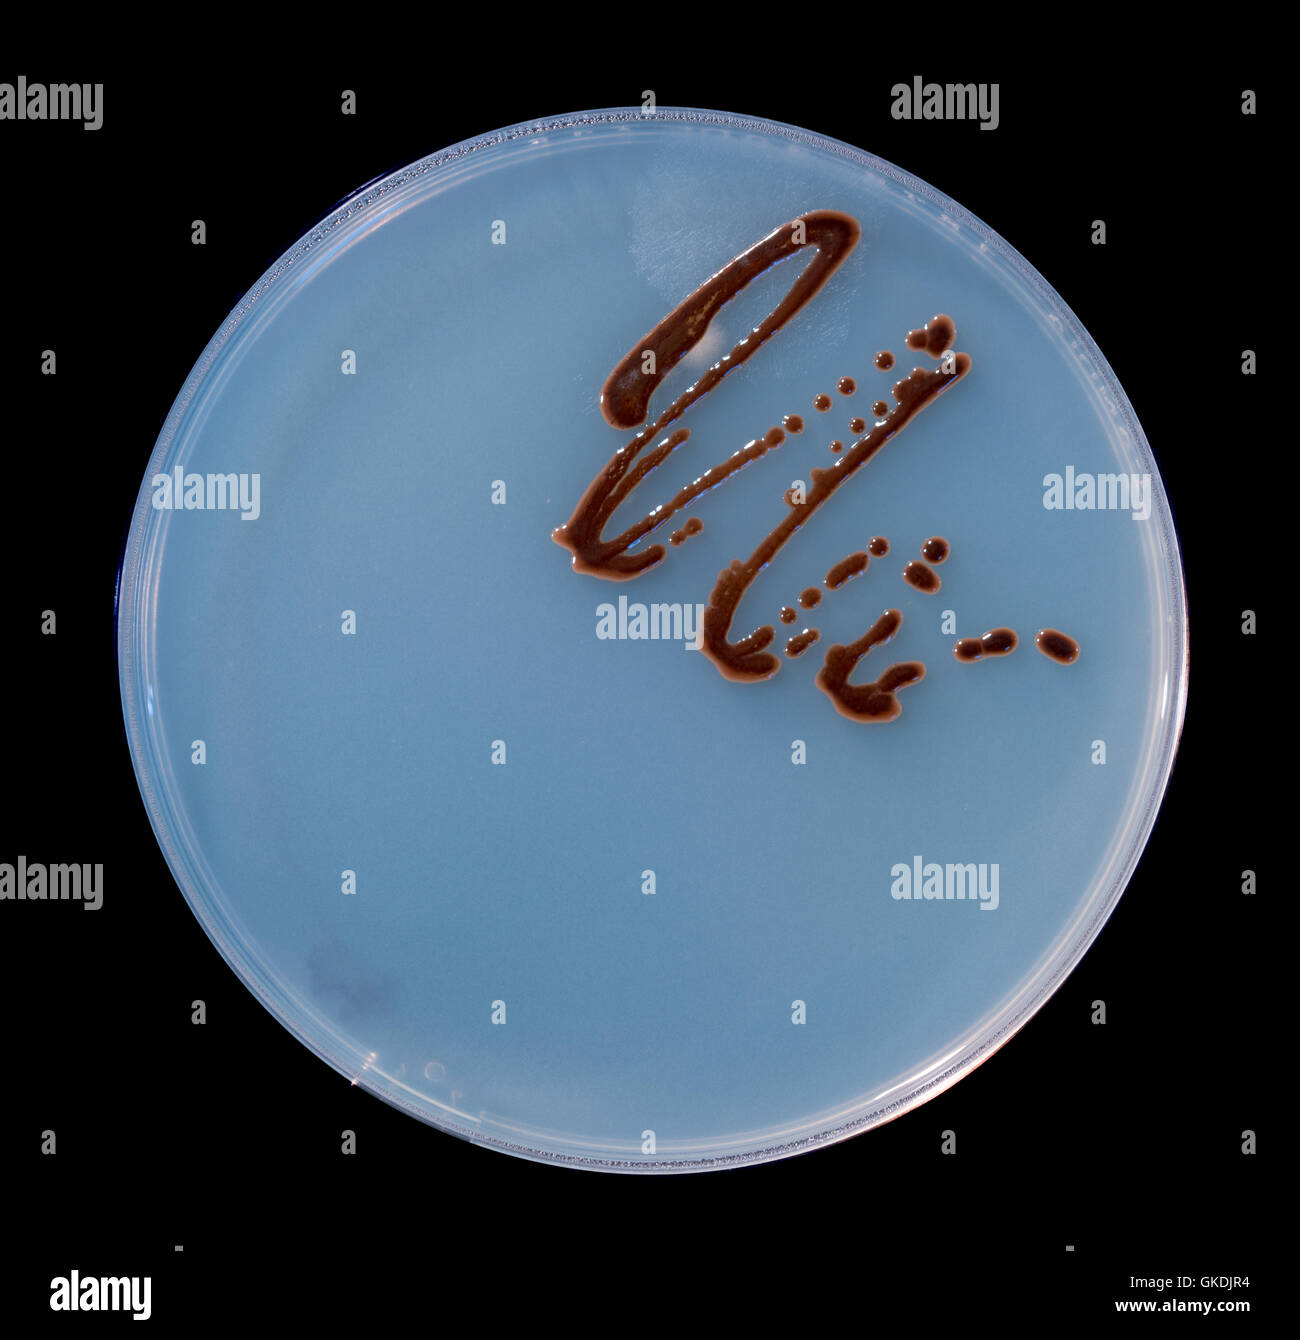 Petri dishes with colonies of microbes and spores of fungi - Stock Image